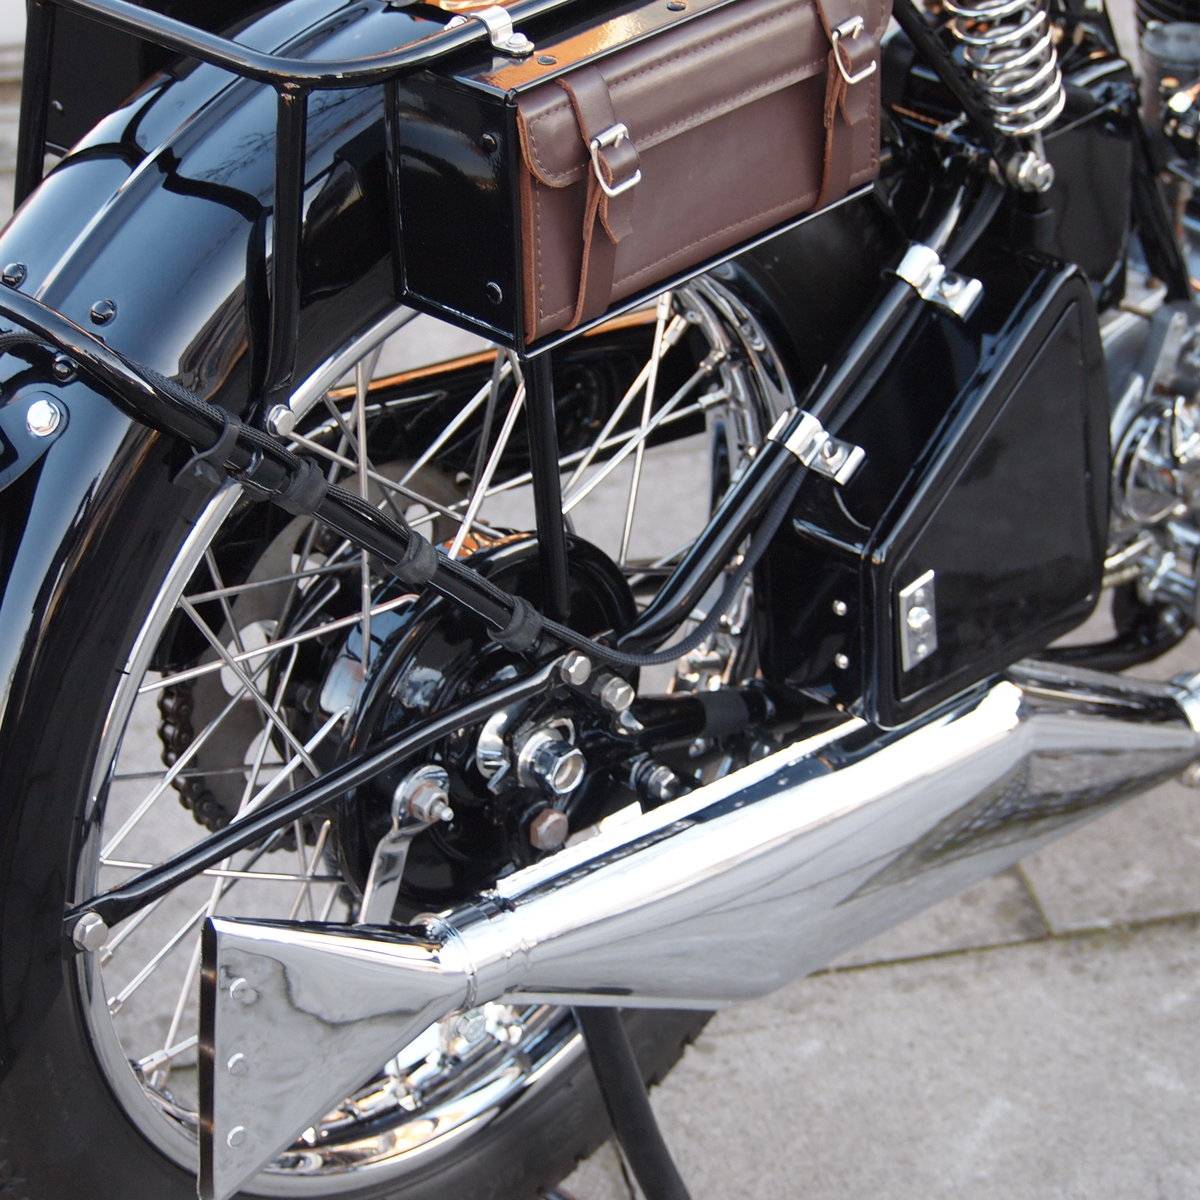 1933 BSA W33/6 499cc 3 Speed Hand Gears, Pure Art. For Sale (picture 5 of 6)